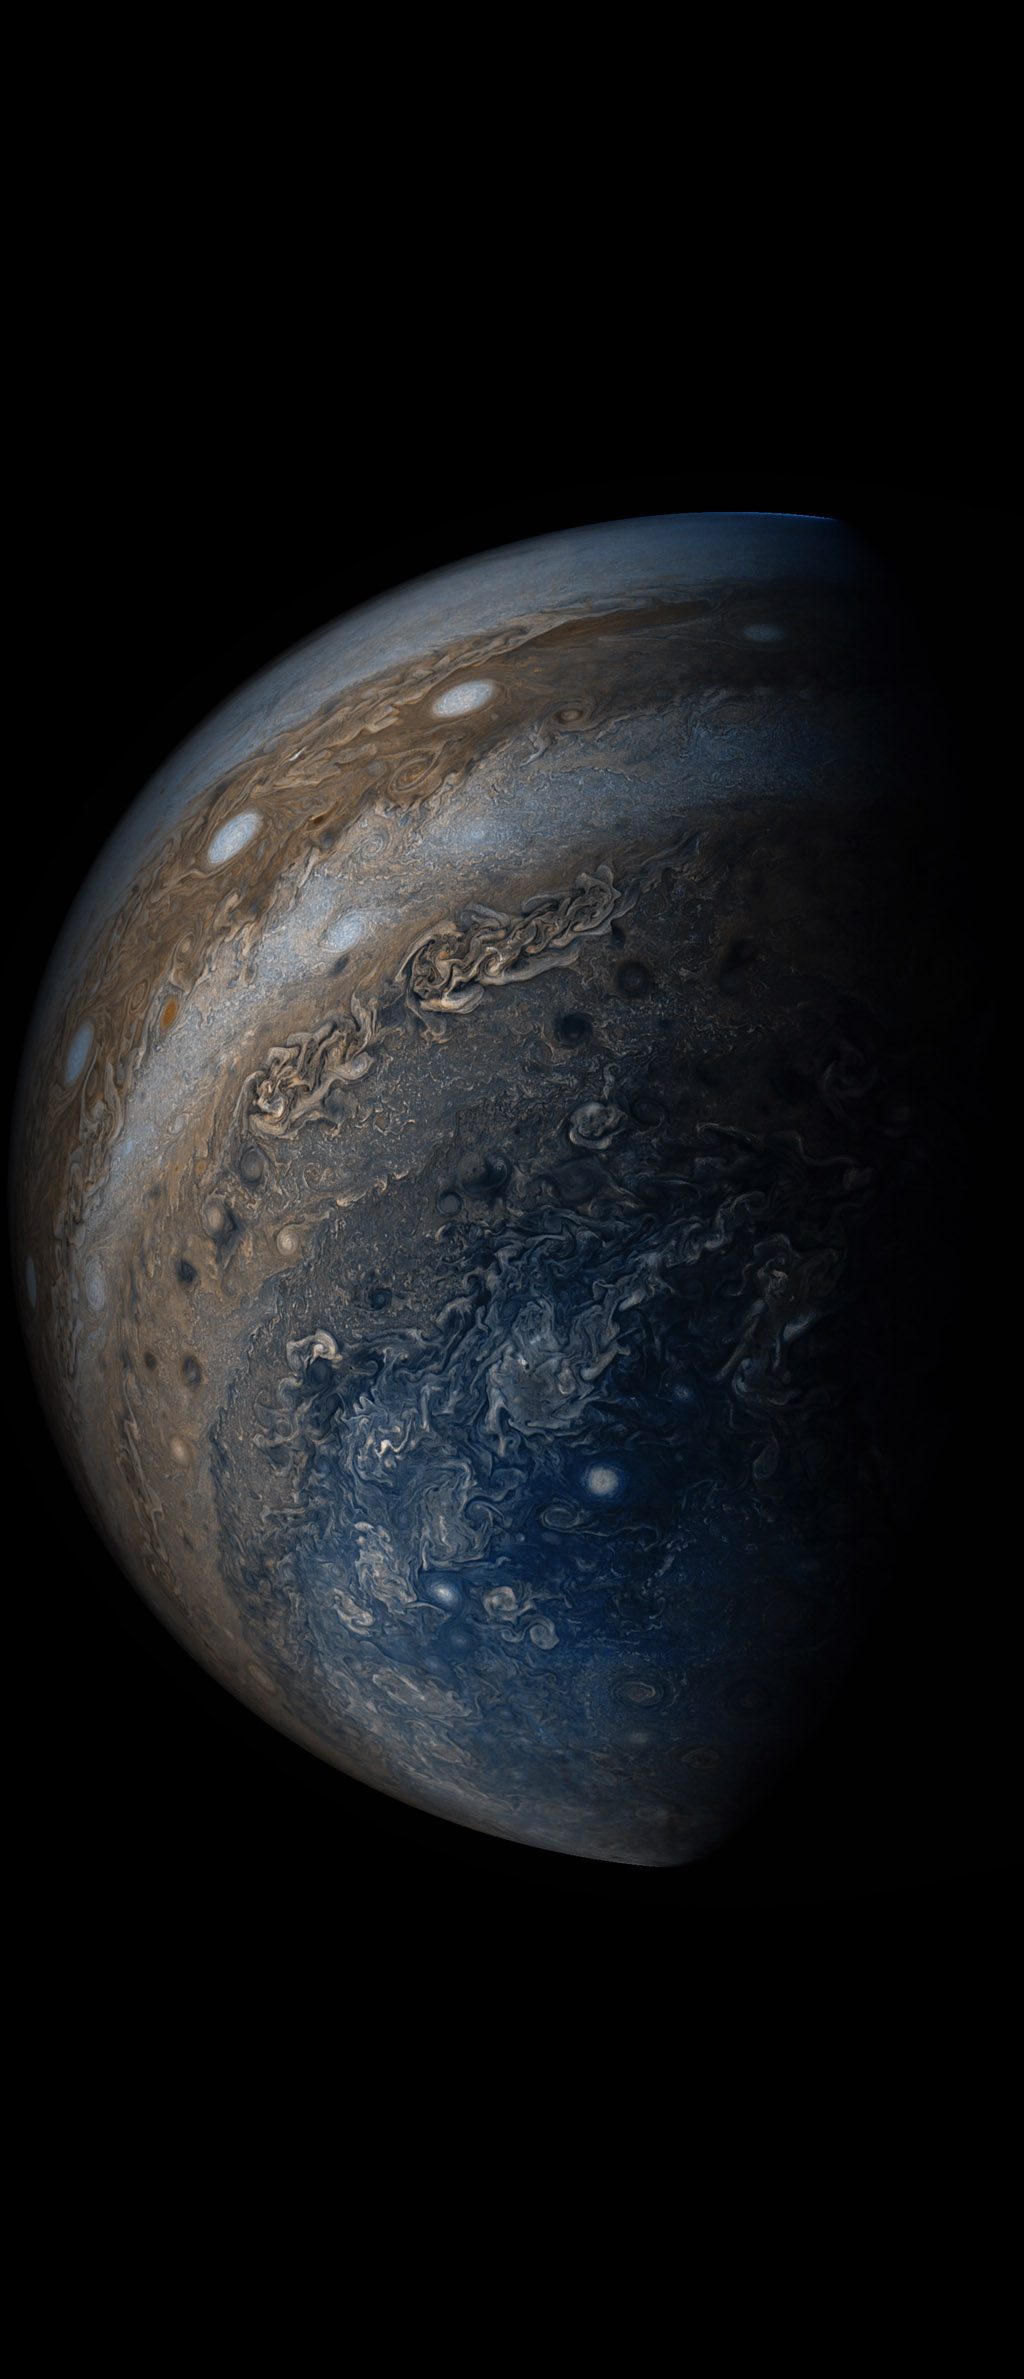 Space Images | Jupiter's Clouds of Many Colors